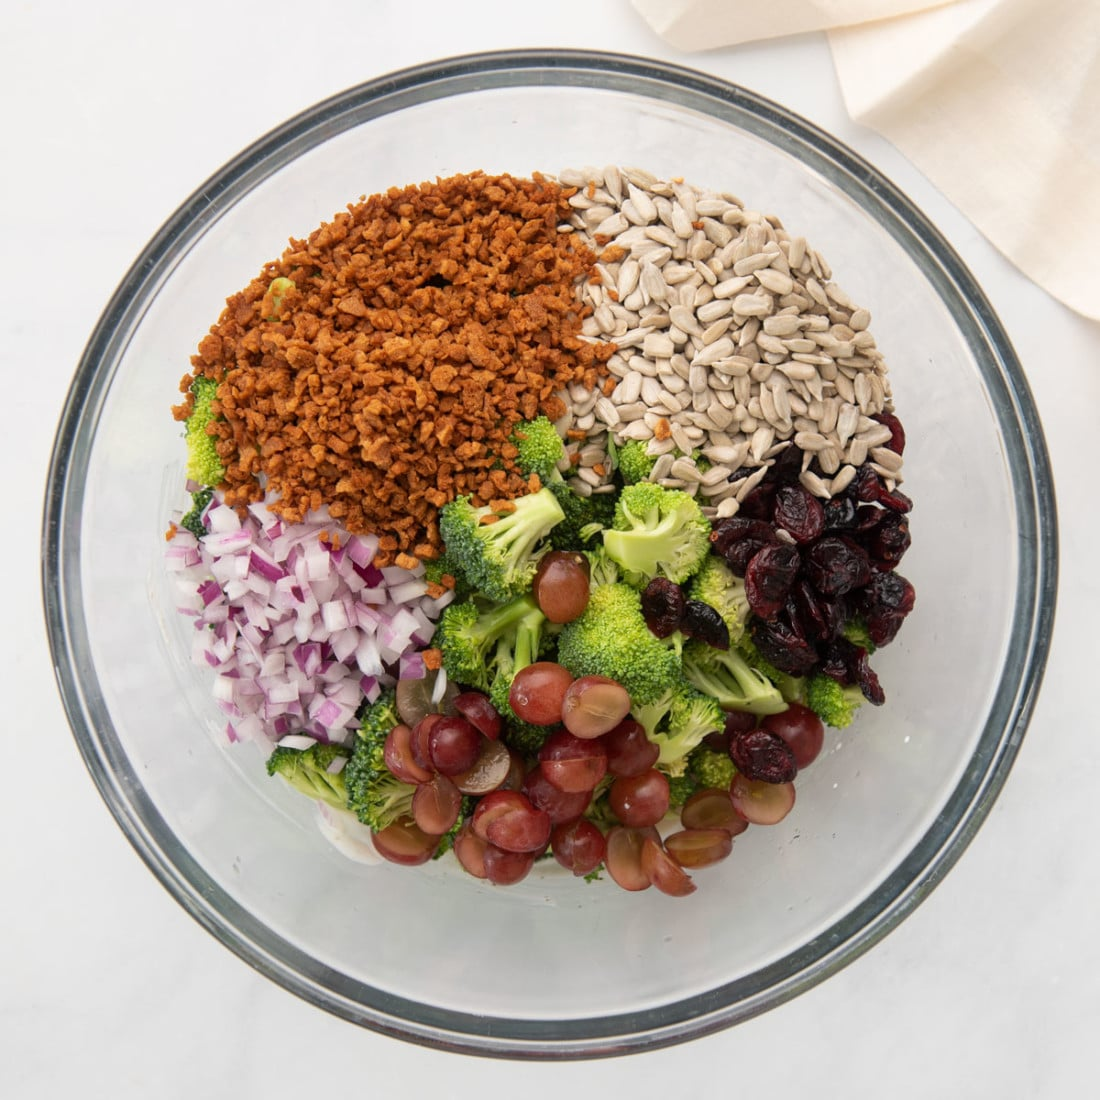 bowl with chopped florets, sunflower seeds, grapes, cranberries, and onion